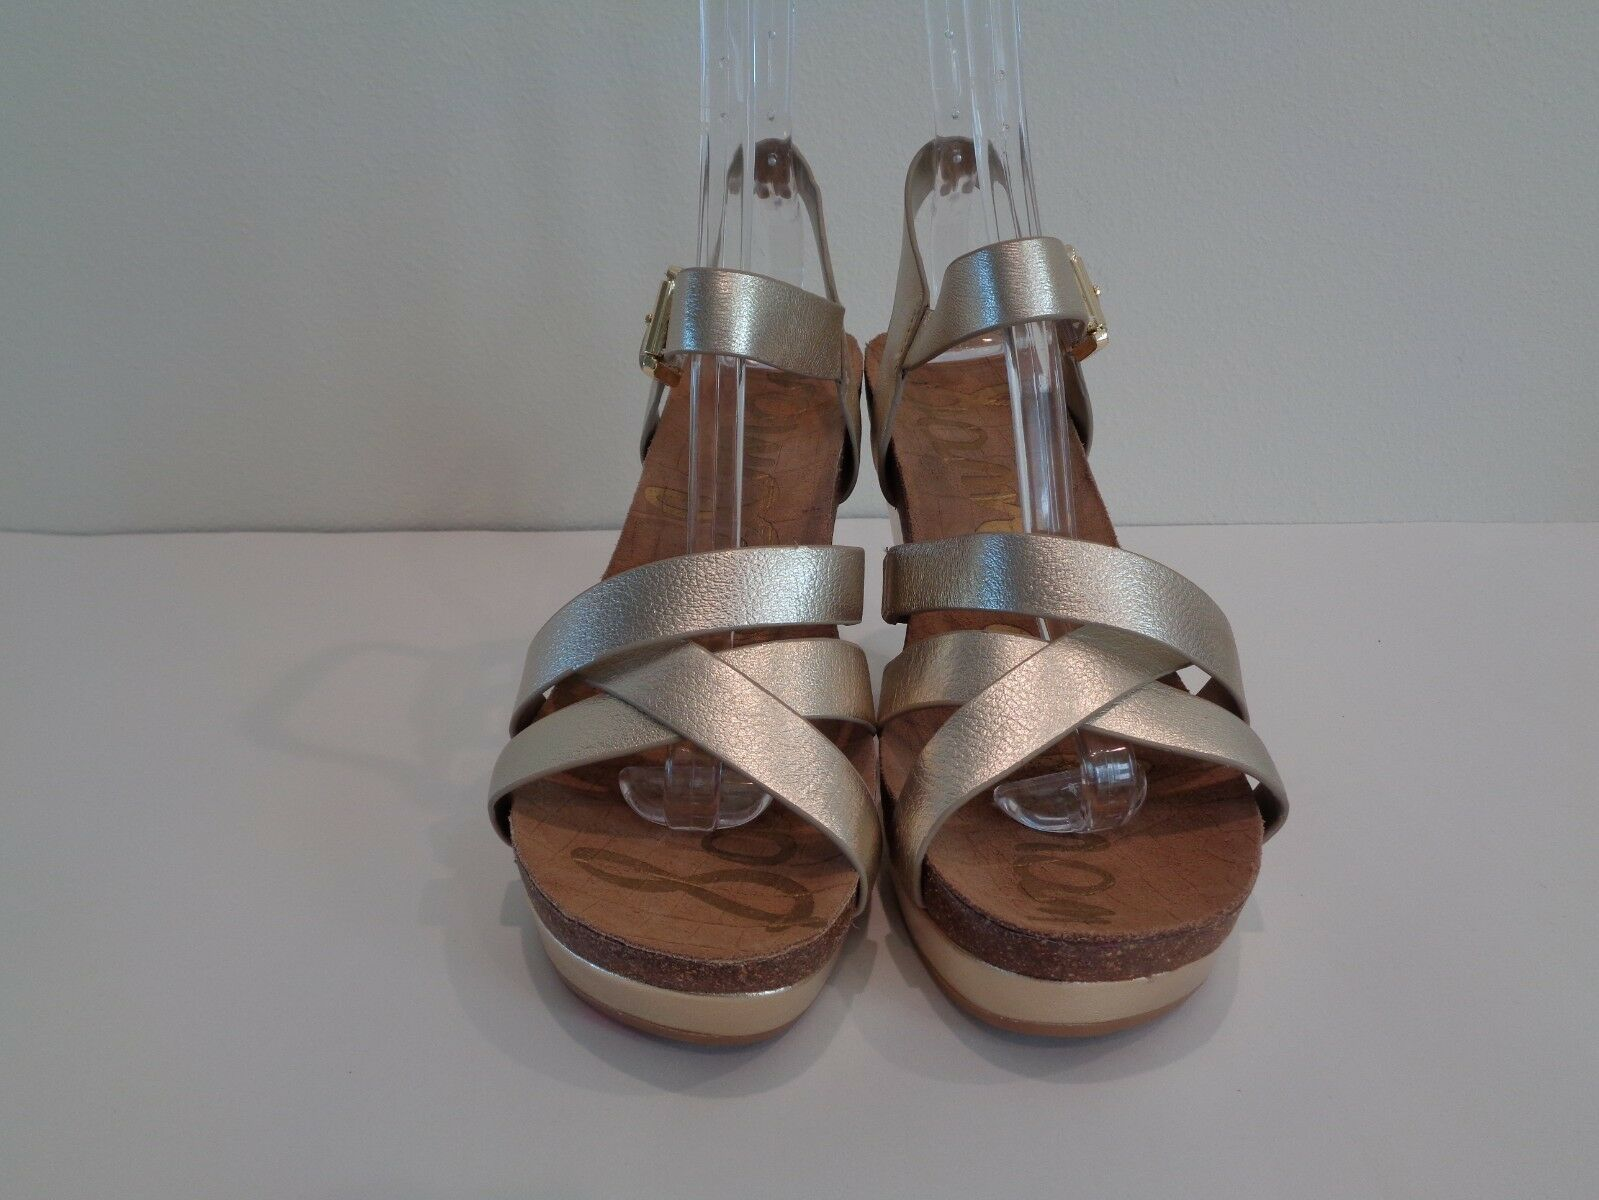 Sam Edelman Size 9.5 9.5 9.5 M NELSON Jute gold Leather Wedge Sandals New Womens shoes 8f9417